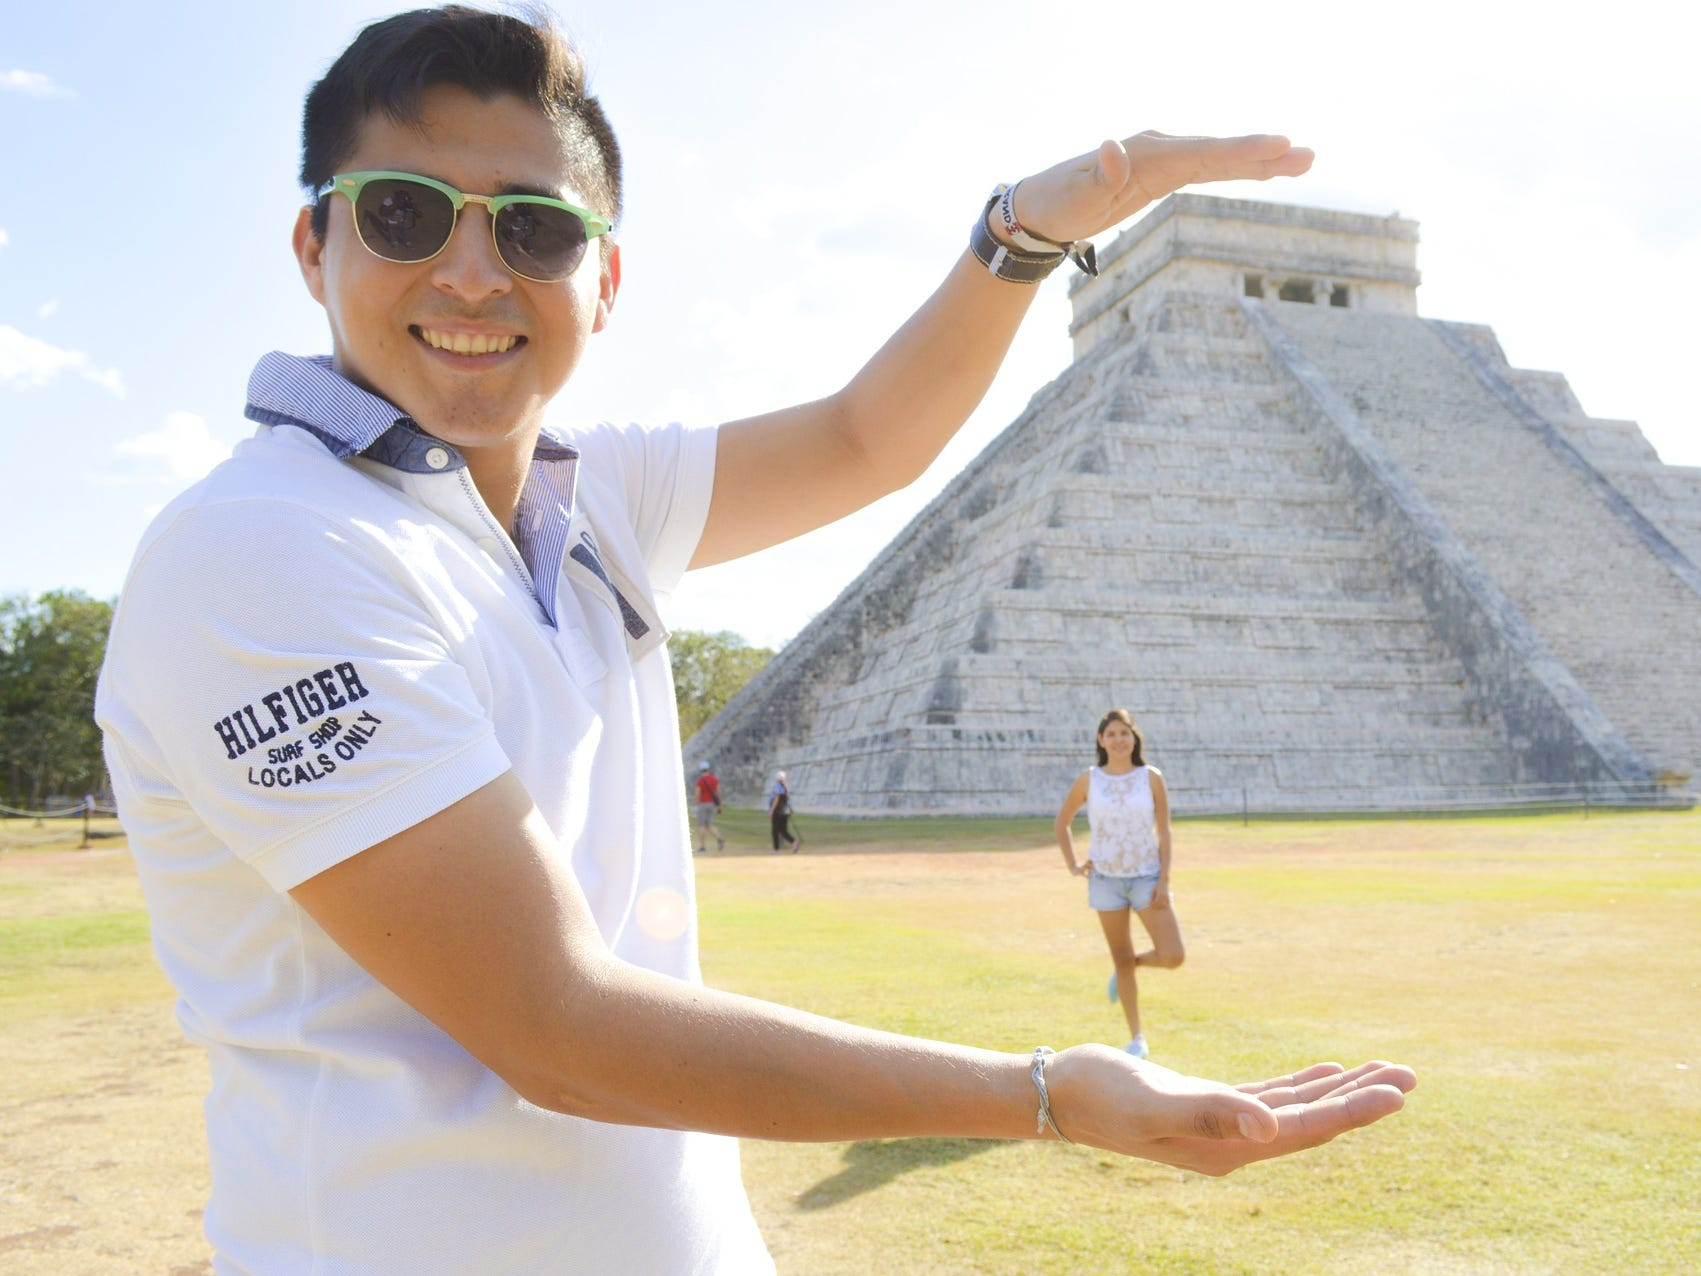 For kids taking Spanish in school, a trip to Mexico can be a revelation, letting them immerse themselves in the language and tour an archaeological site.